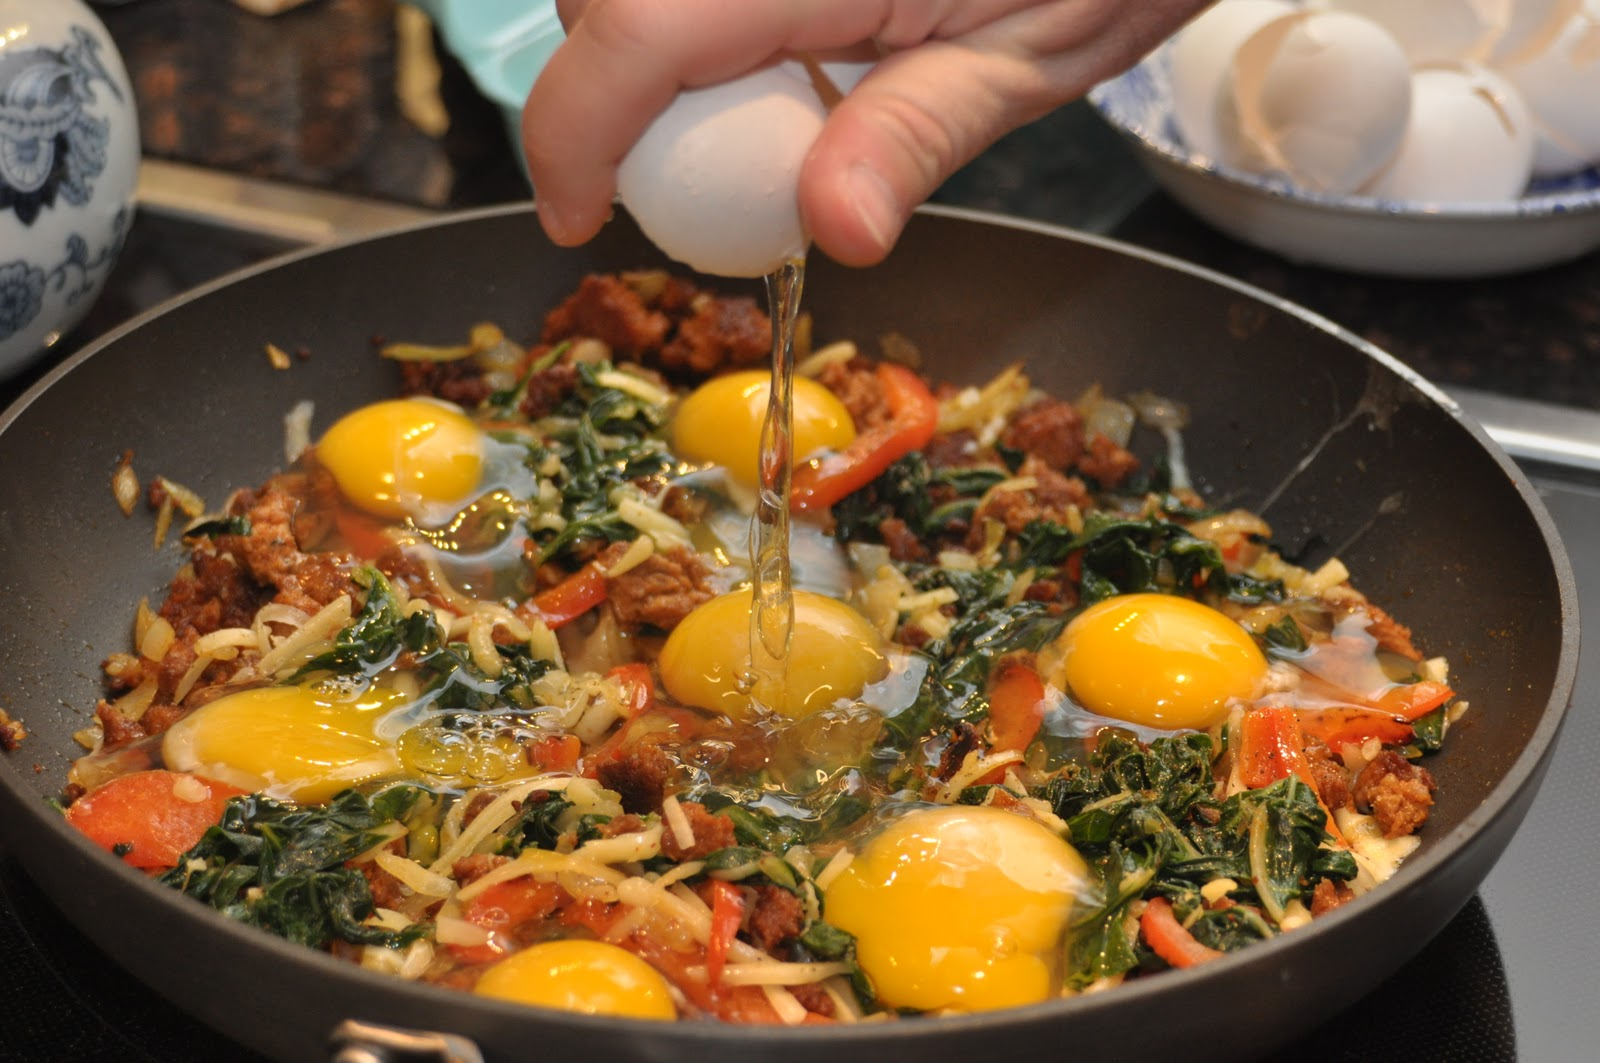 Made Like Madeley: Breakfast Skillet with Green Onion Home Fries